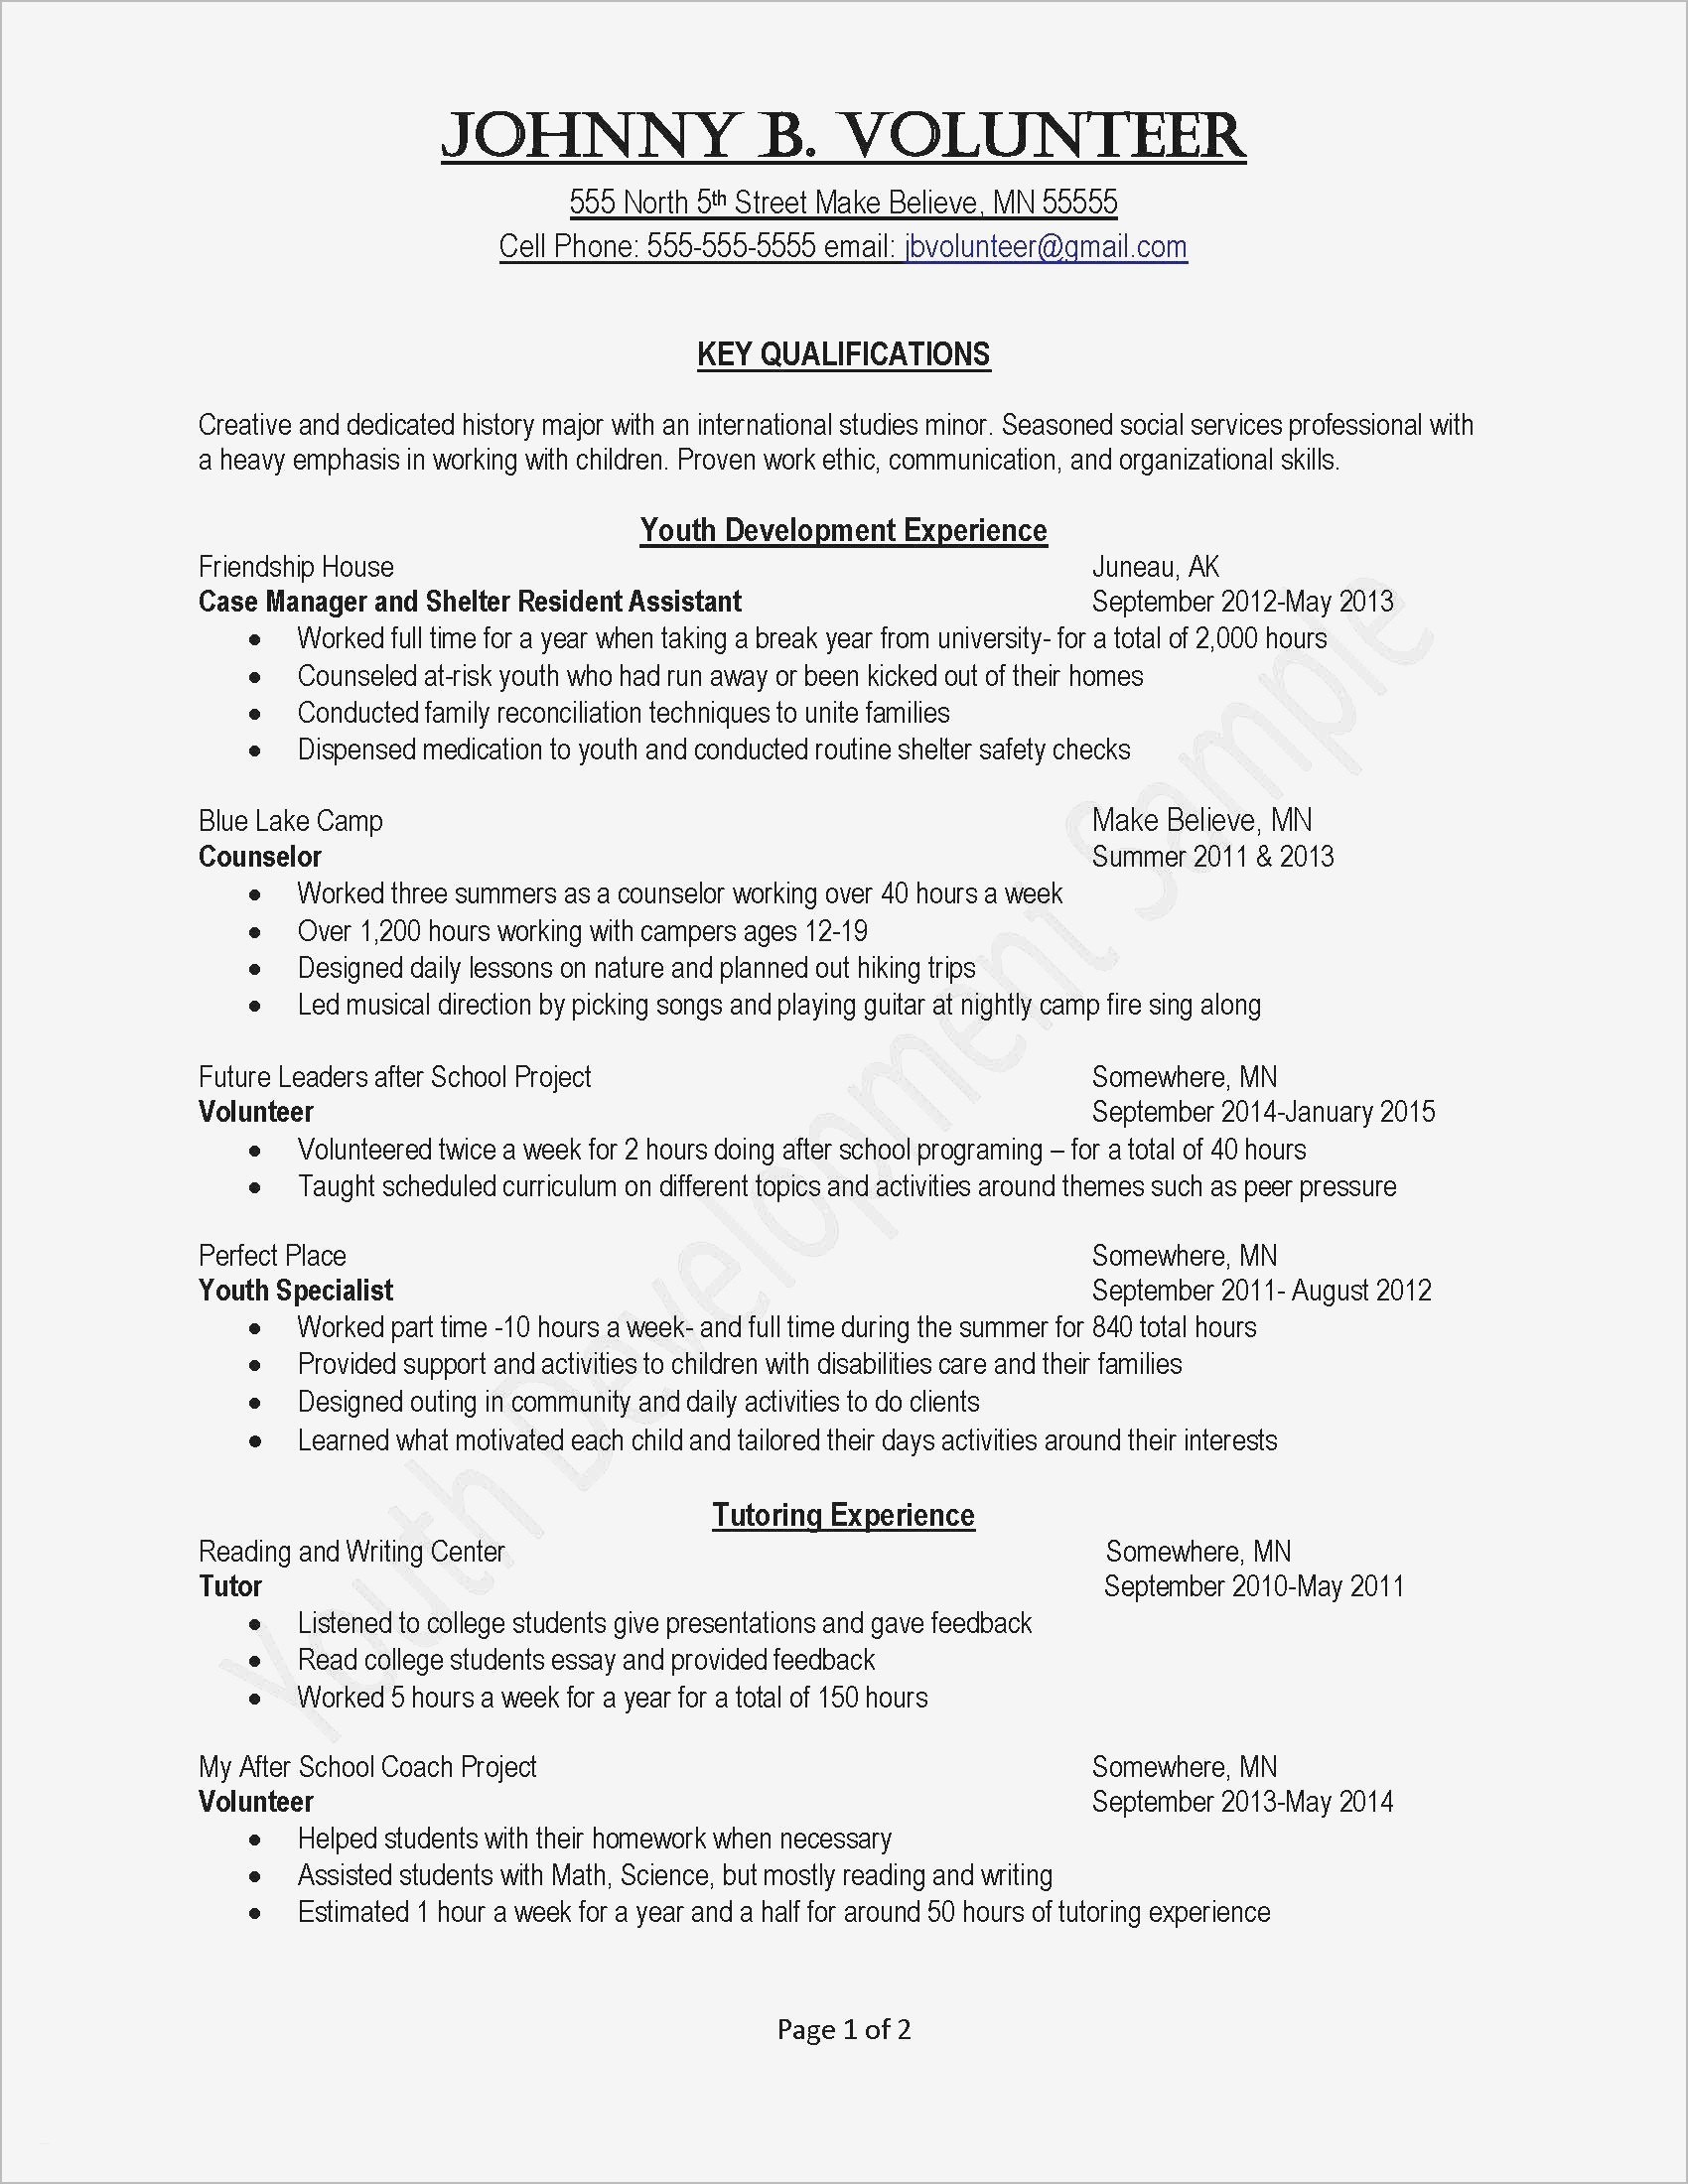 Cover Letter for Teaching Job Template - Cover Letter Sample for Teaching Job Refrence Job Fer Letter